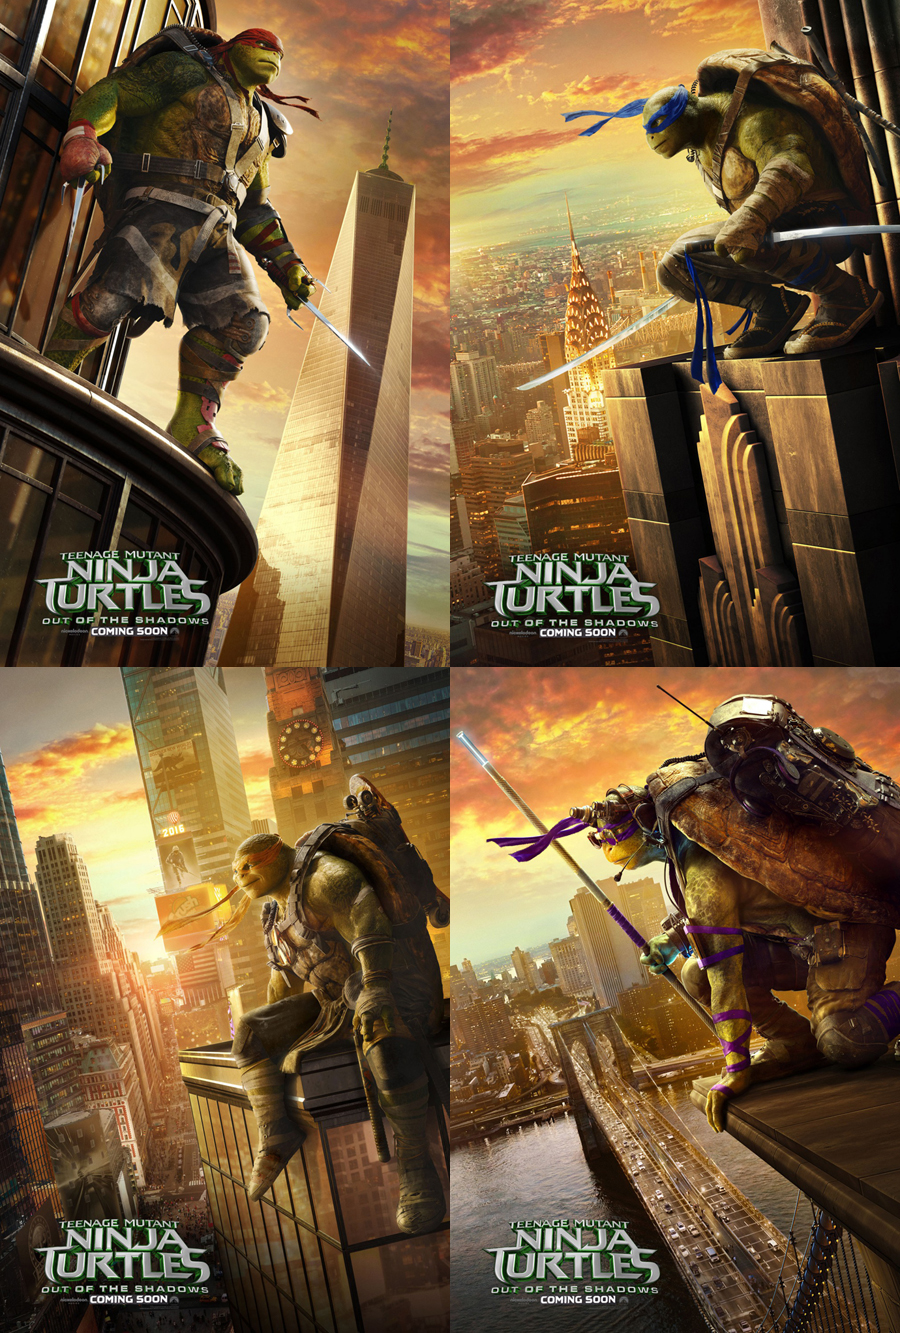 Teenage Mutant Ninja Turtles Out Of The Shadows Movie Poster Original Set 27x40 Ebay